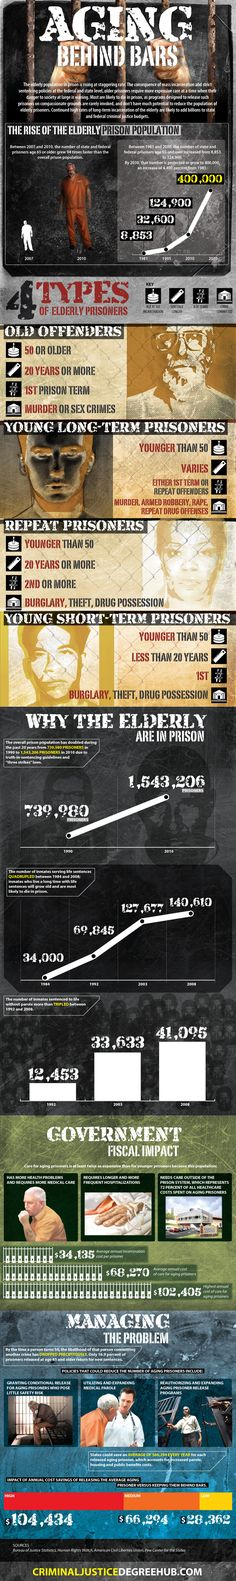 Aging Behind Bars [Infographic] - the changing age profile of America's #prisoners | Criminal Justice Degree Hub